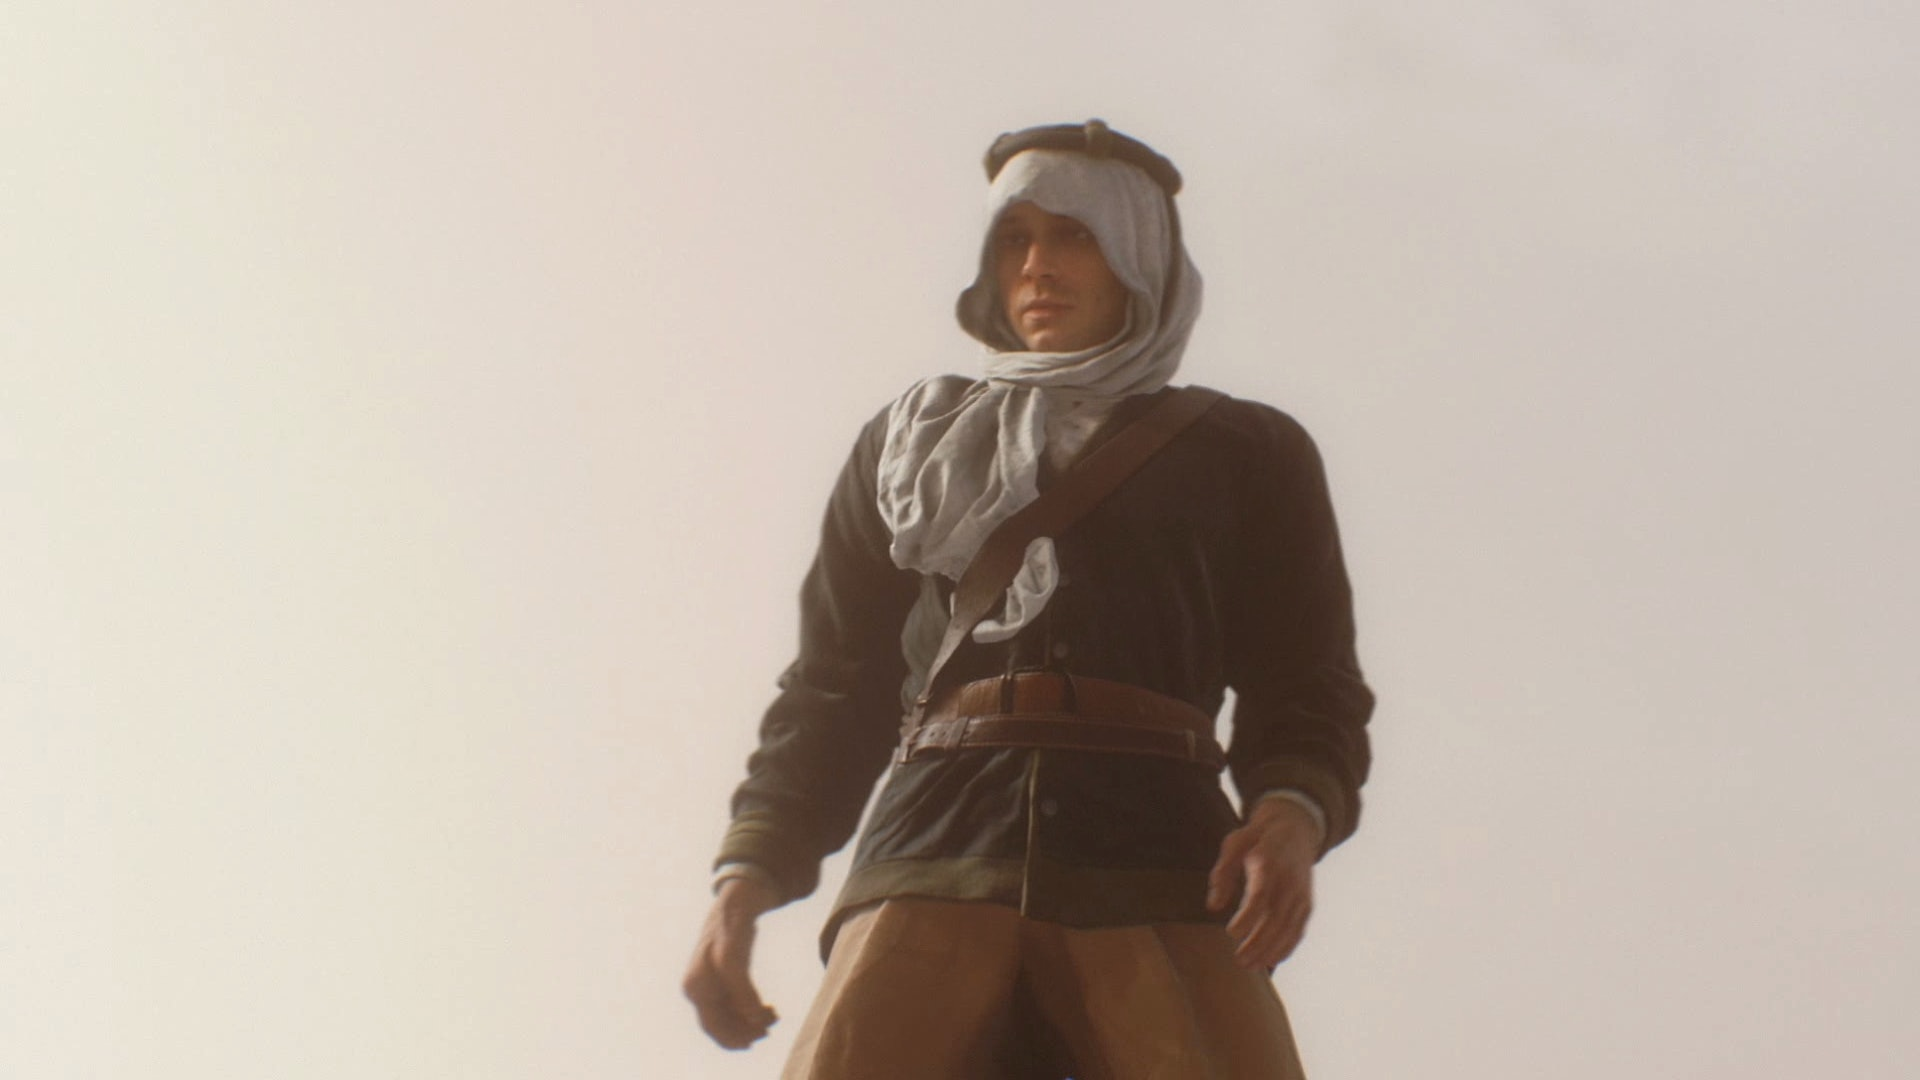 T.E. Lawrence (Lawrence of Arabia) from Battlefield 1